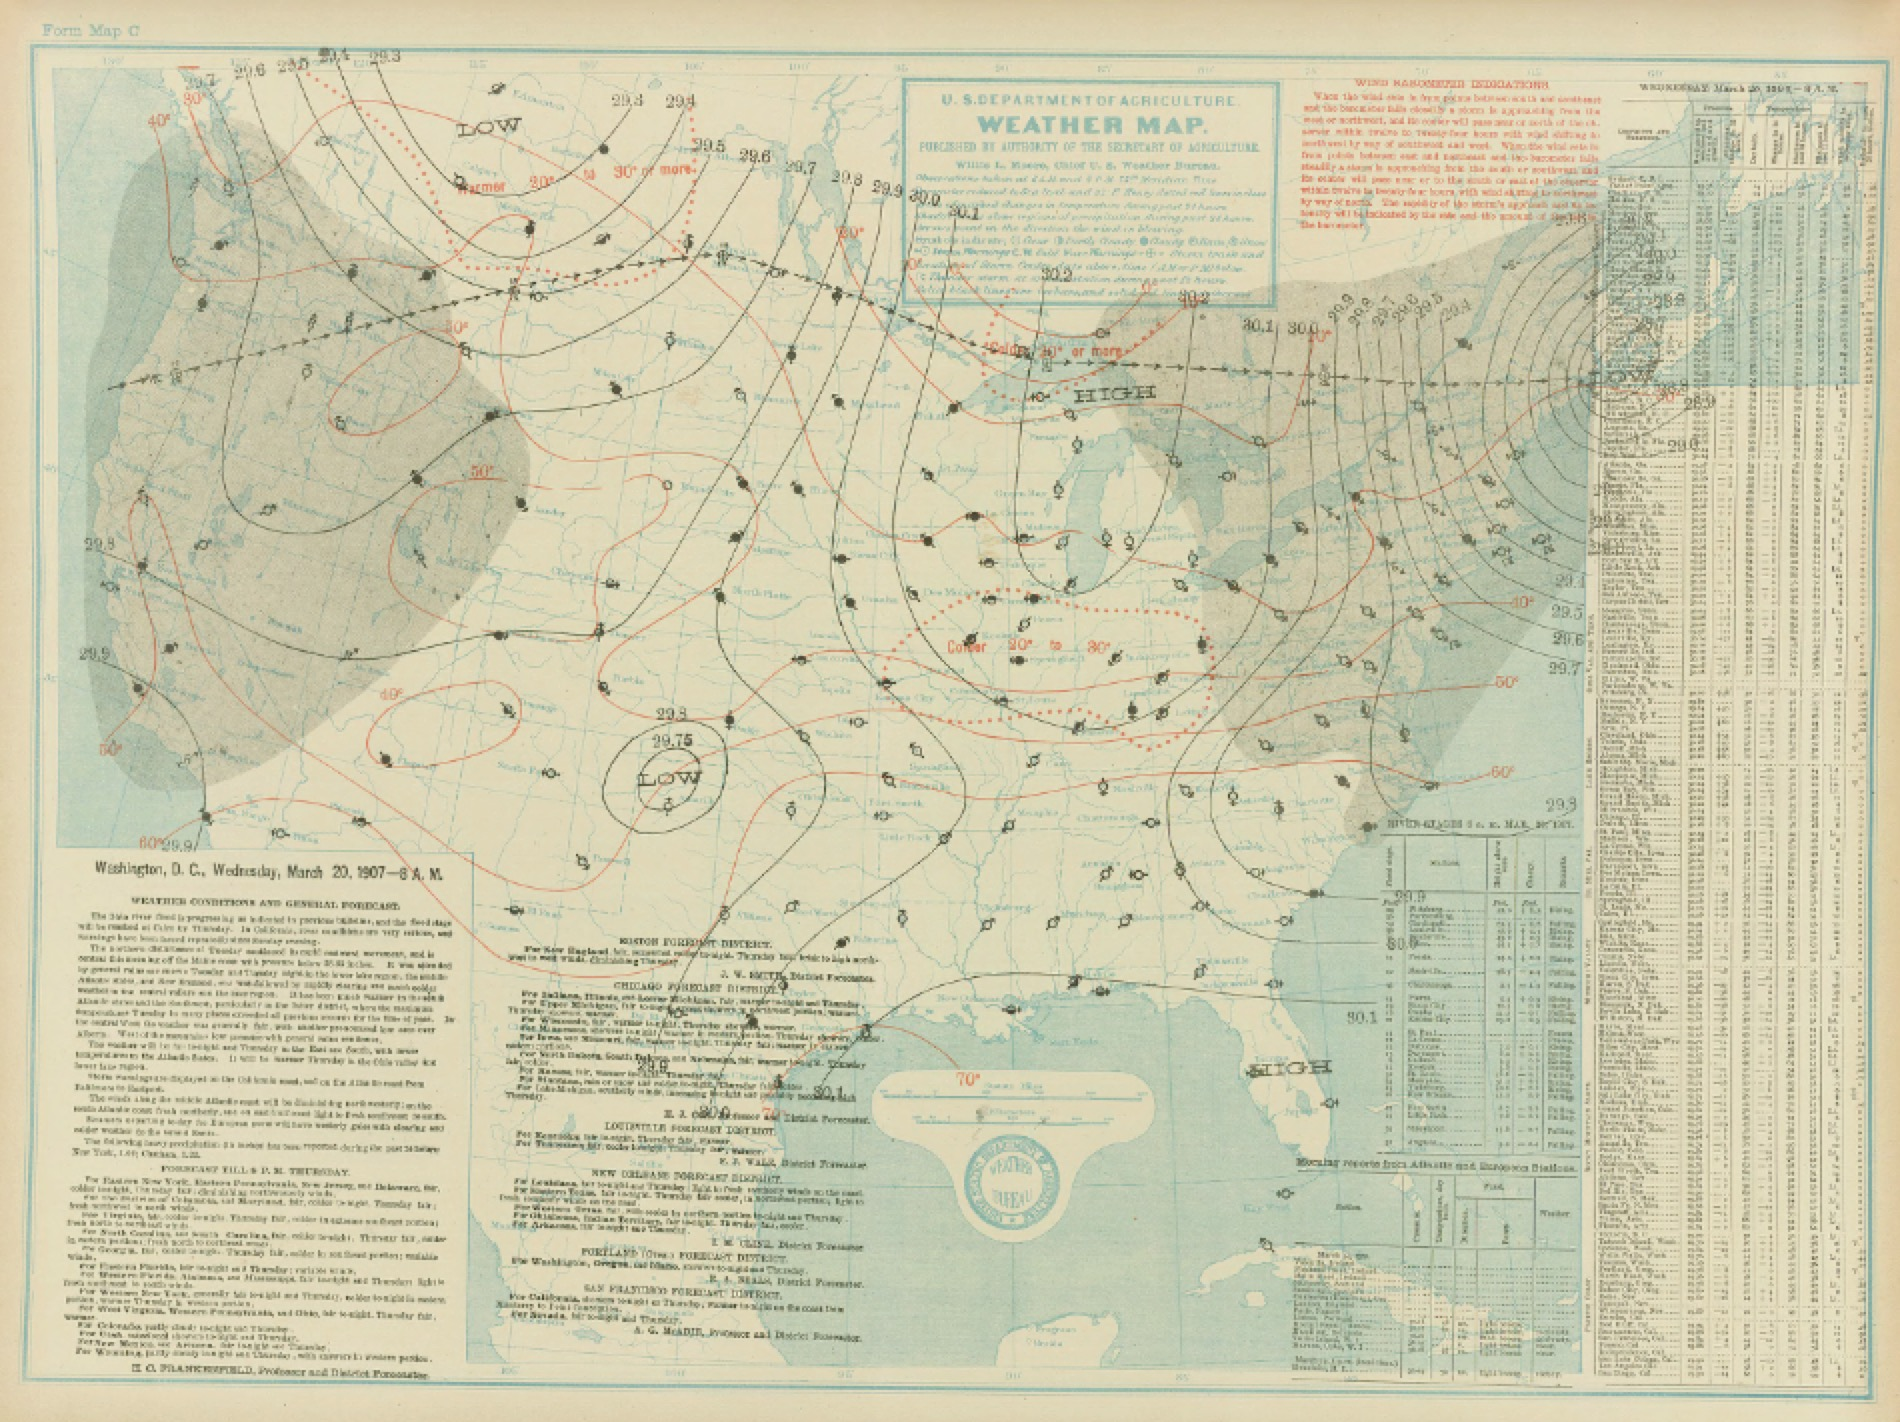 Surface map for March 20, 1907 | NOAA